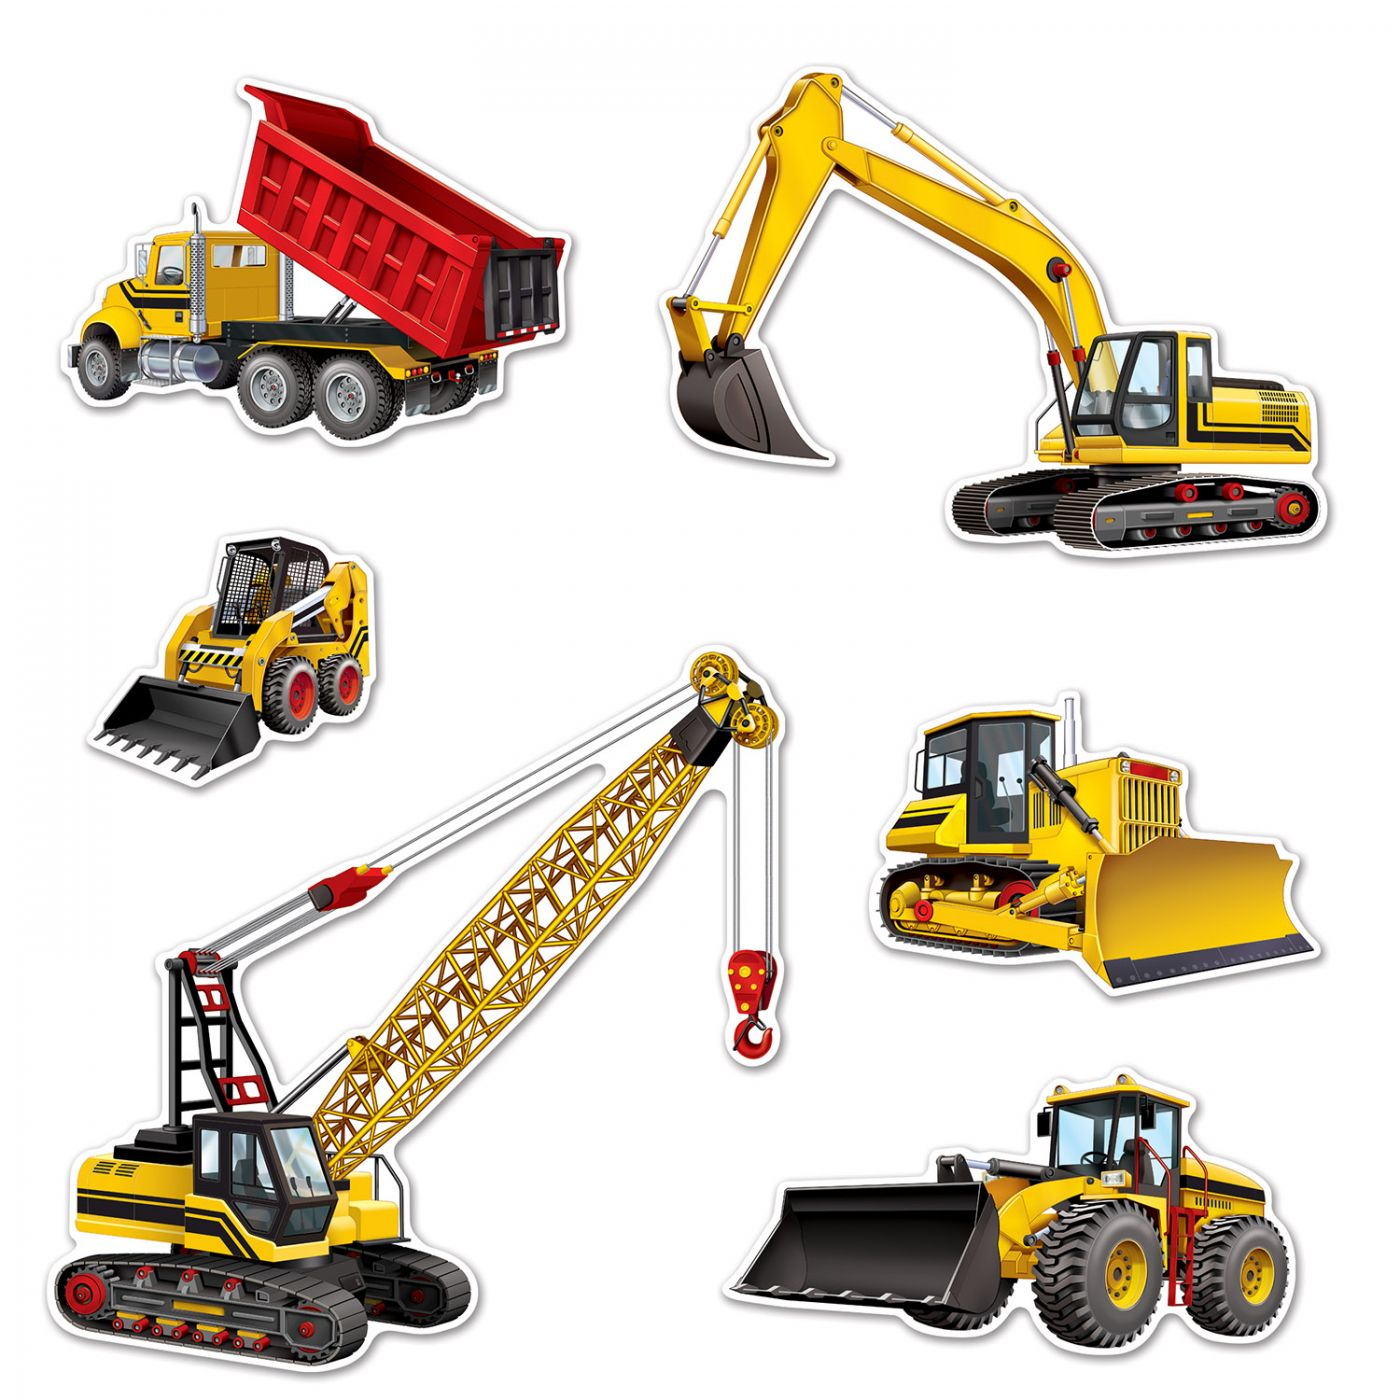 Construction Equipment Cutouts image